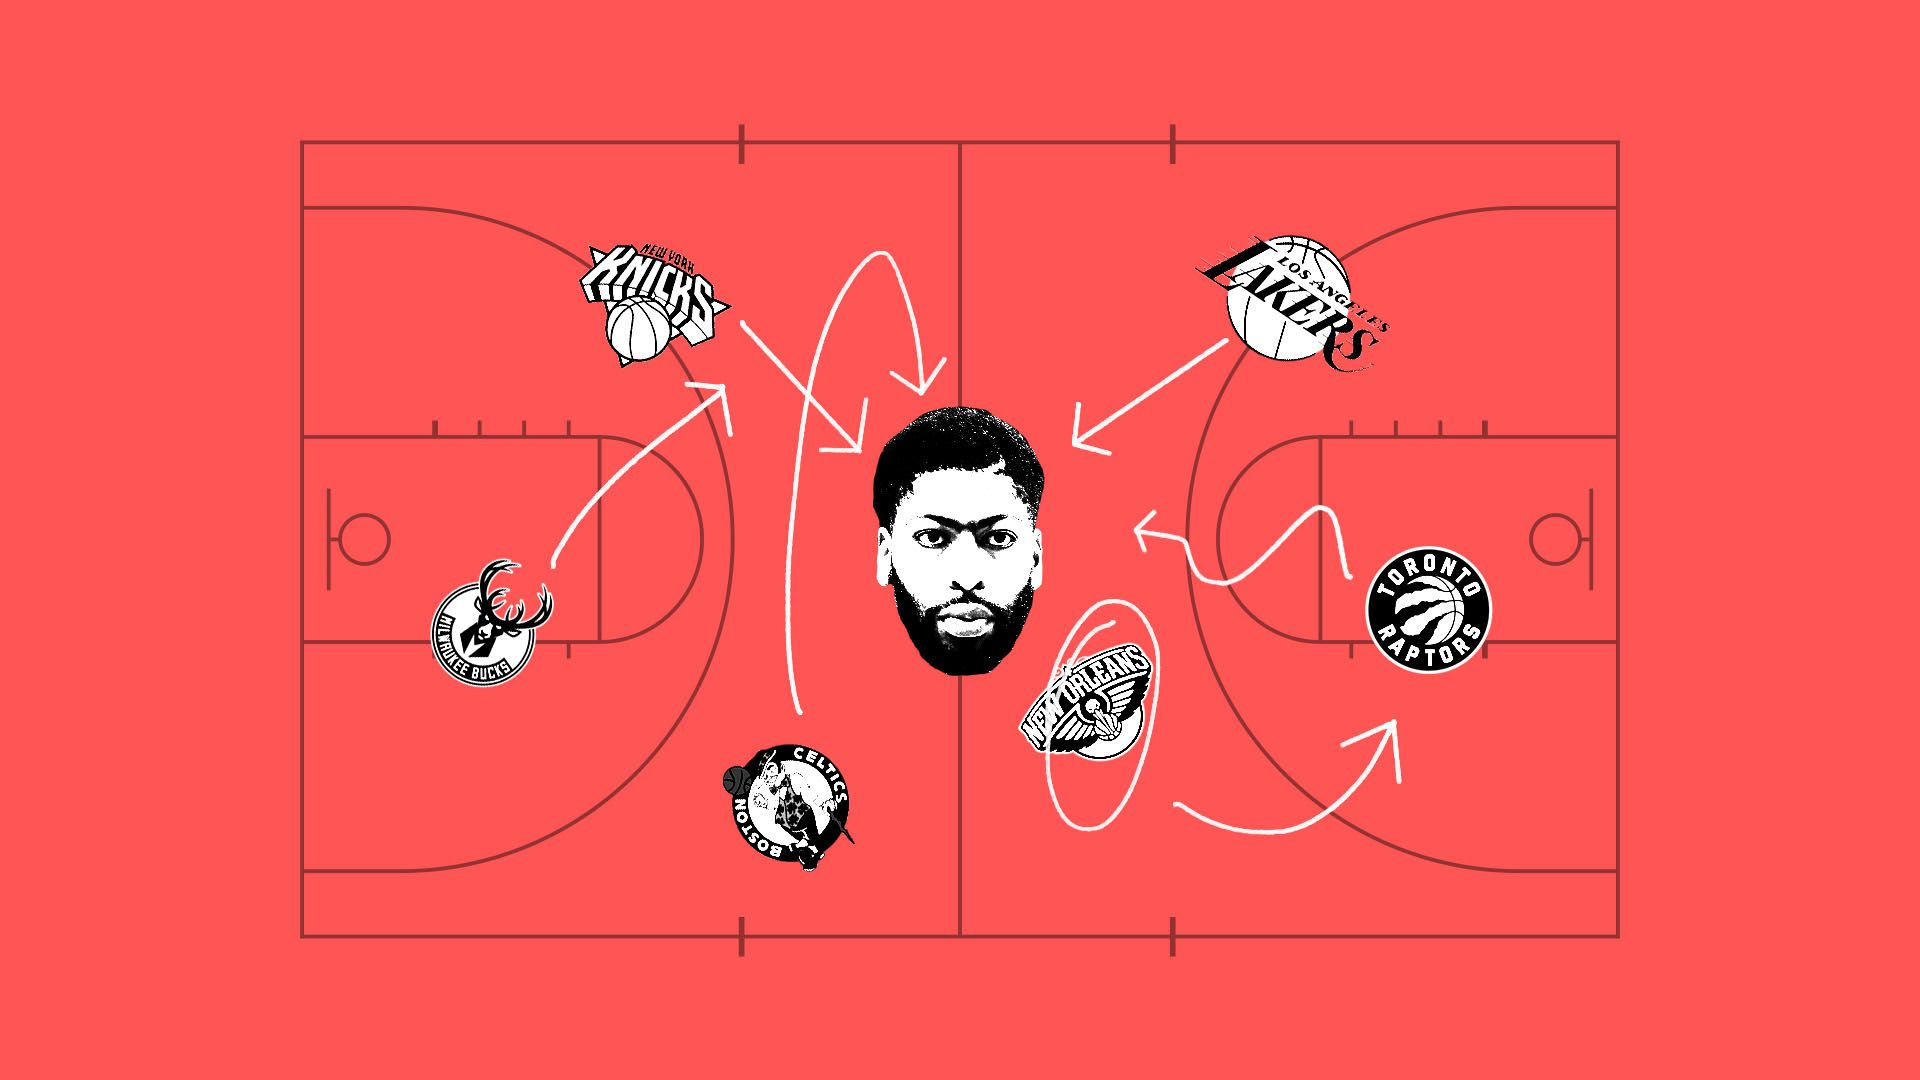 Illustration of Anthony Davis surrounded by the logos of the teams who are fighting for him